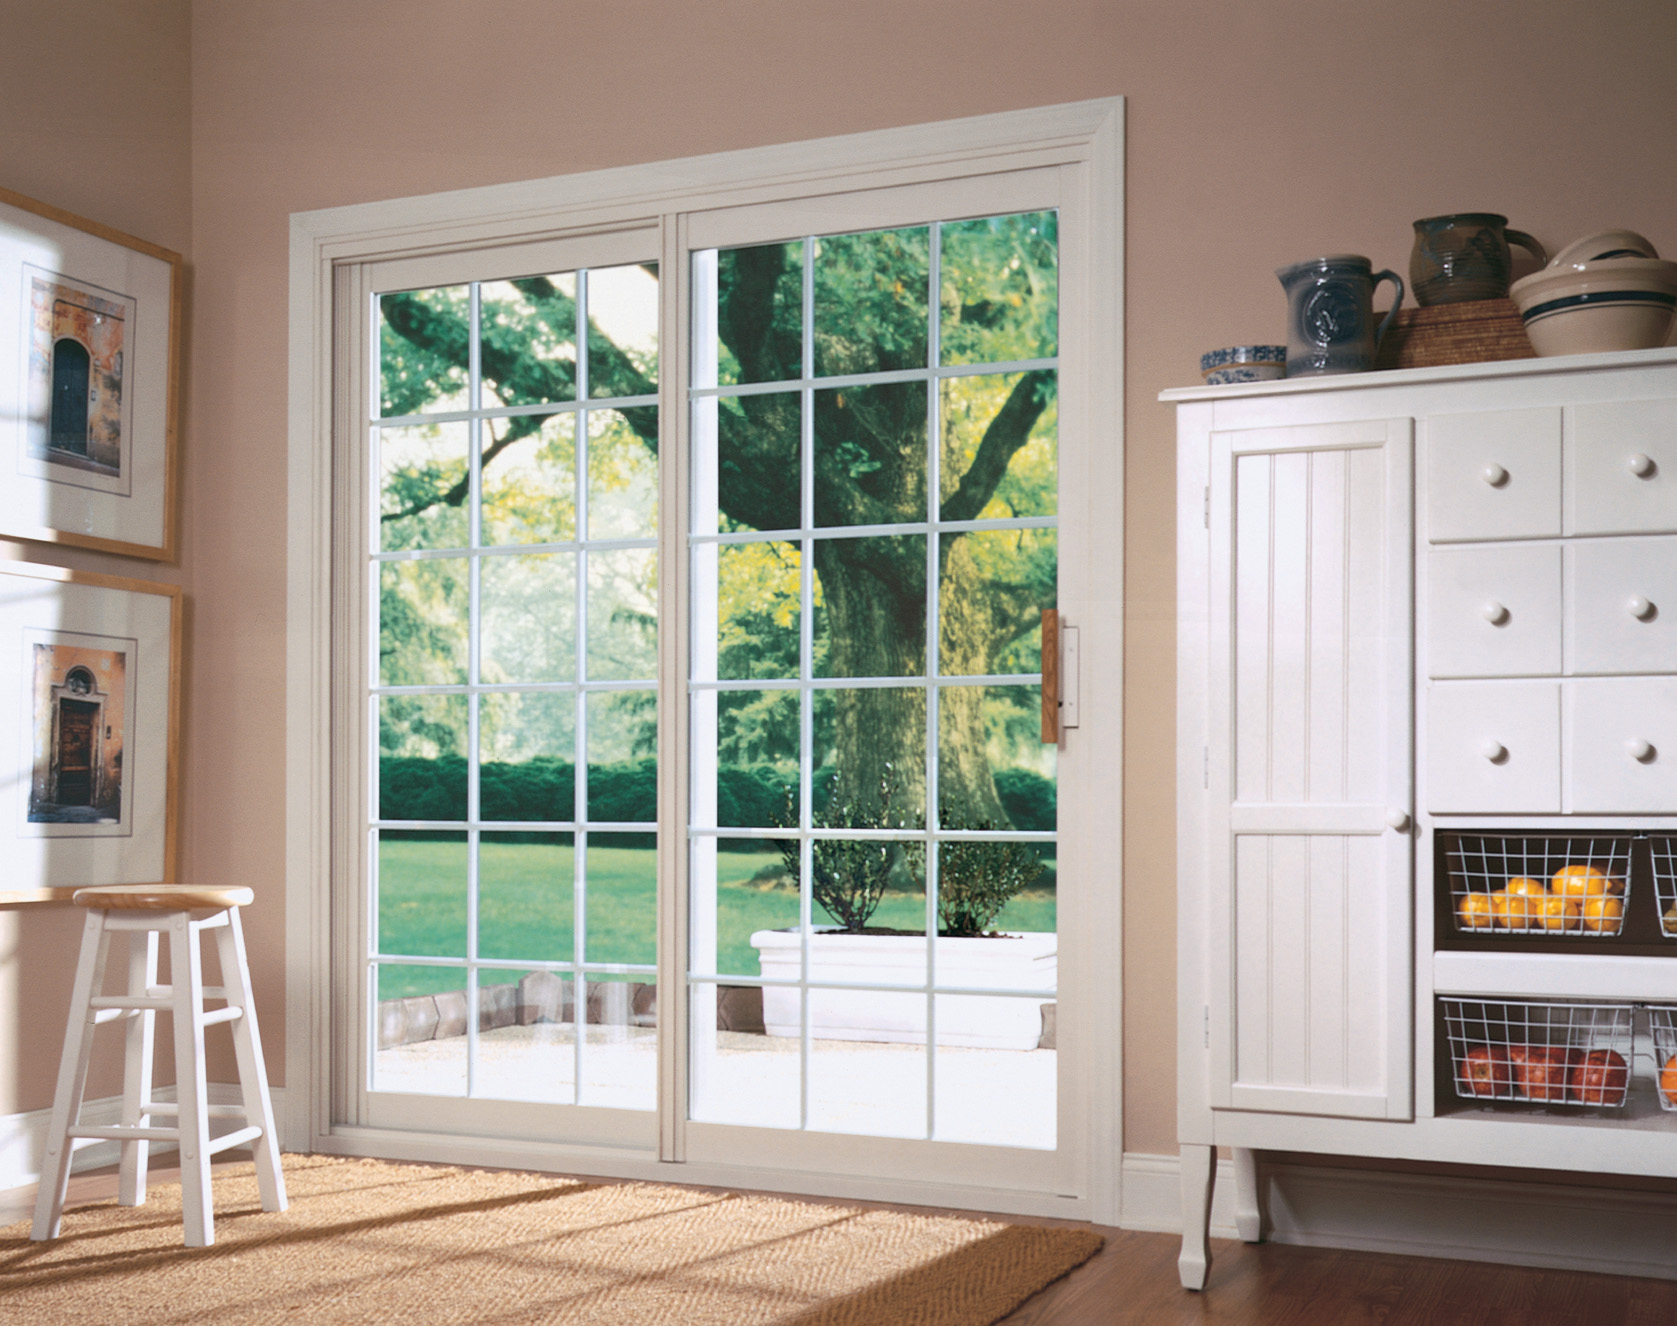 Warm light enters the room through a classic French door